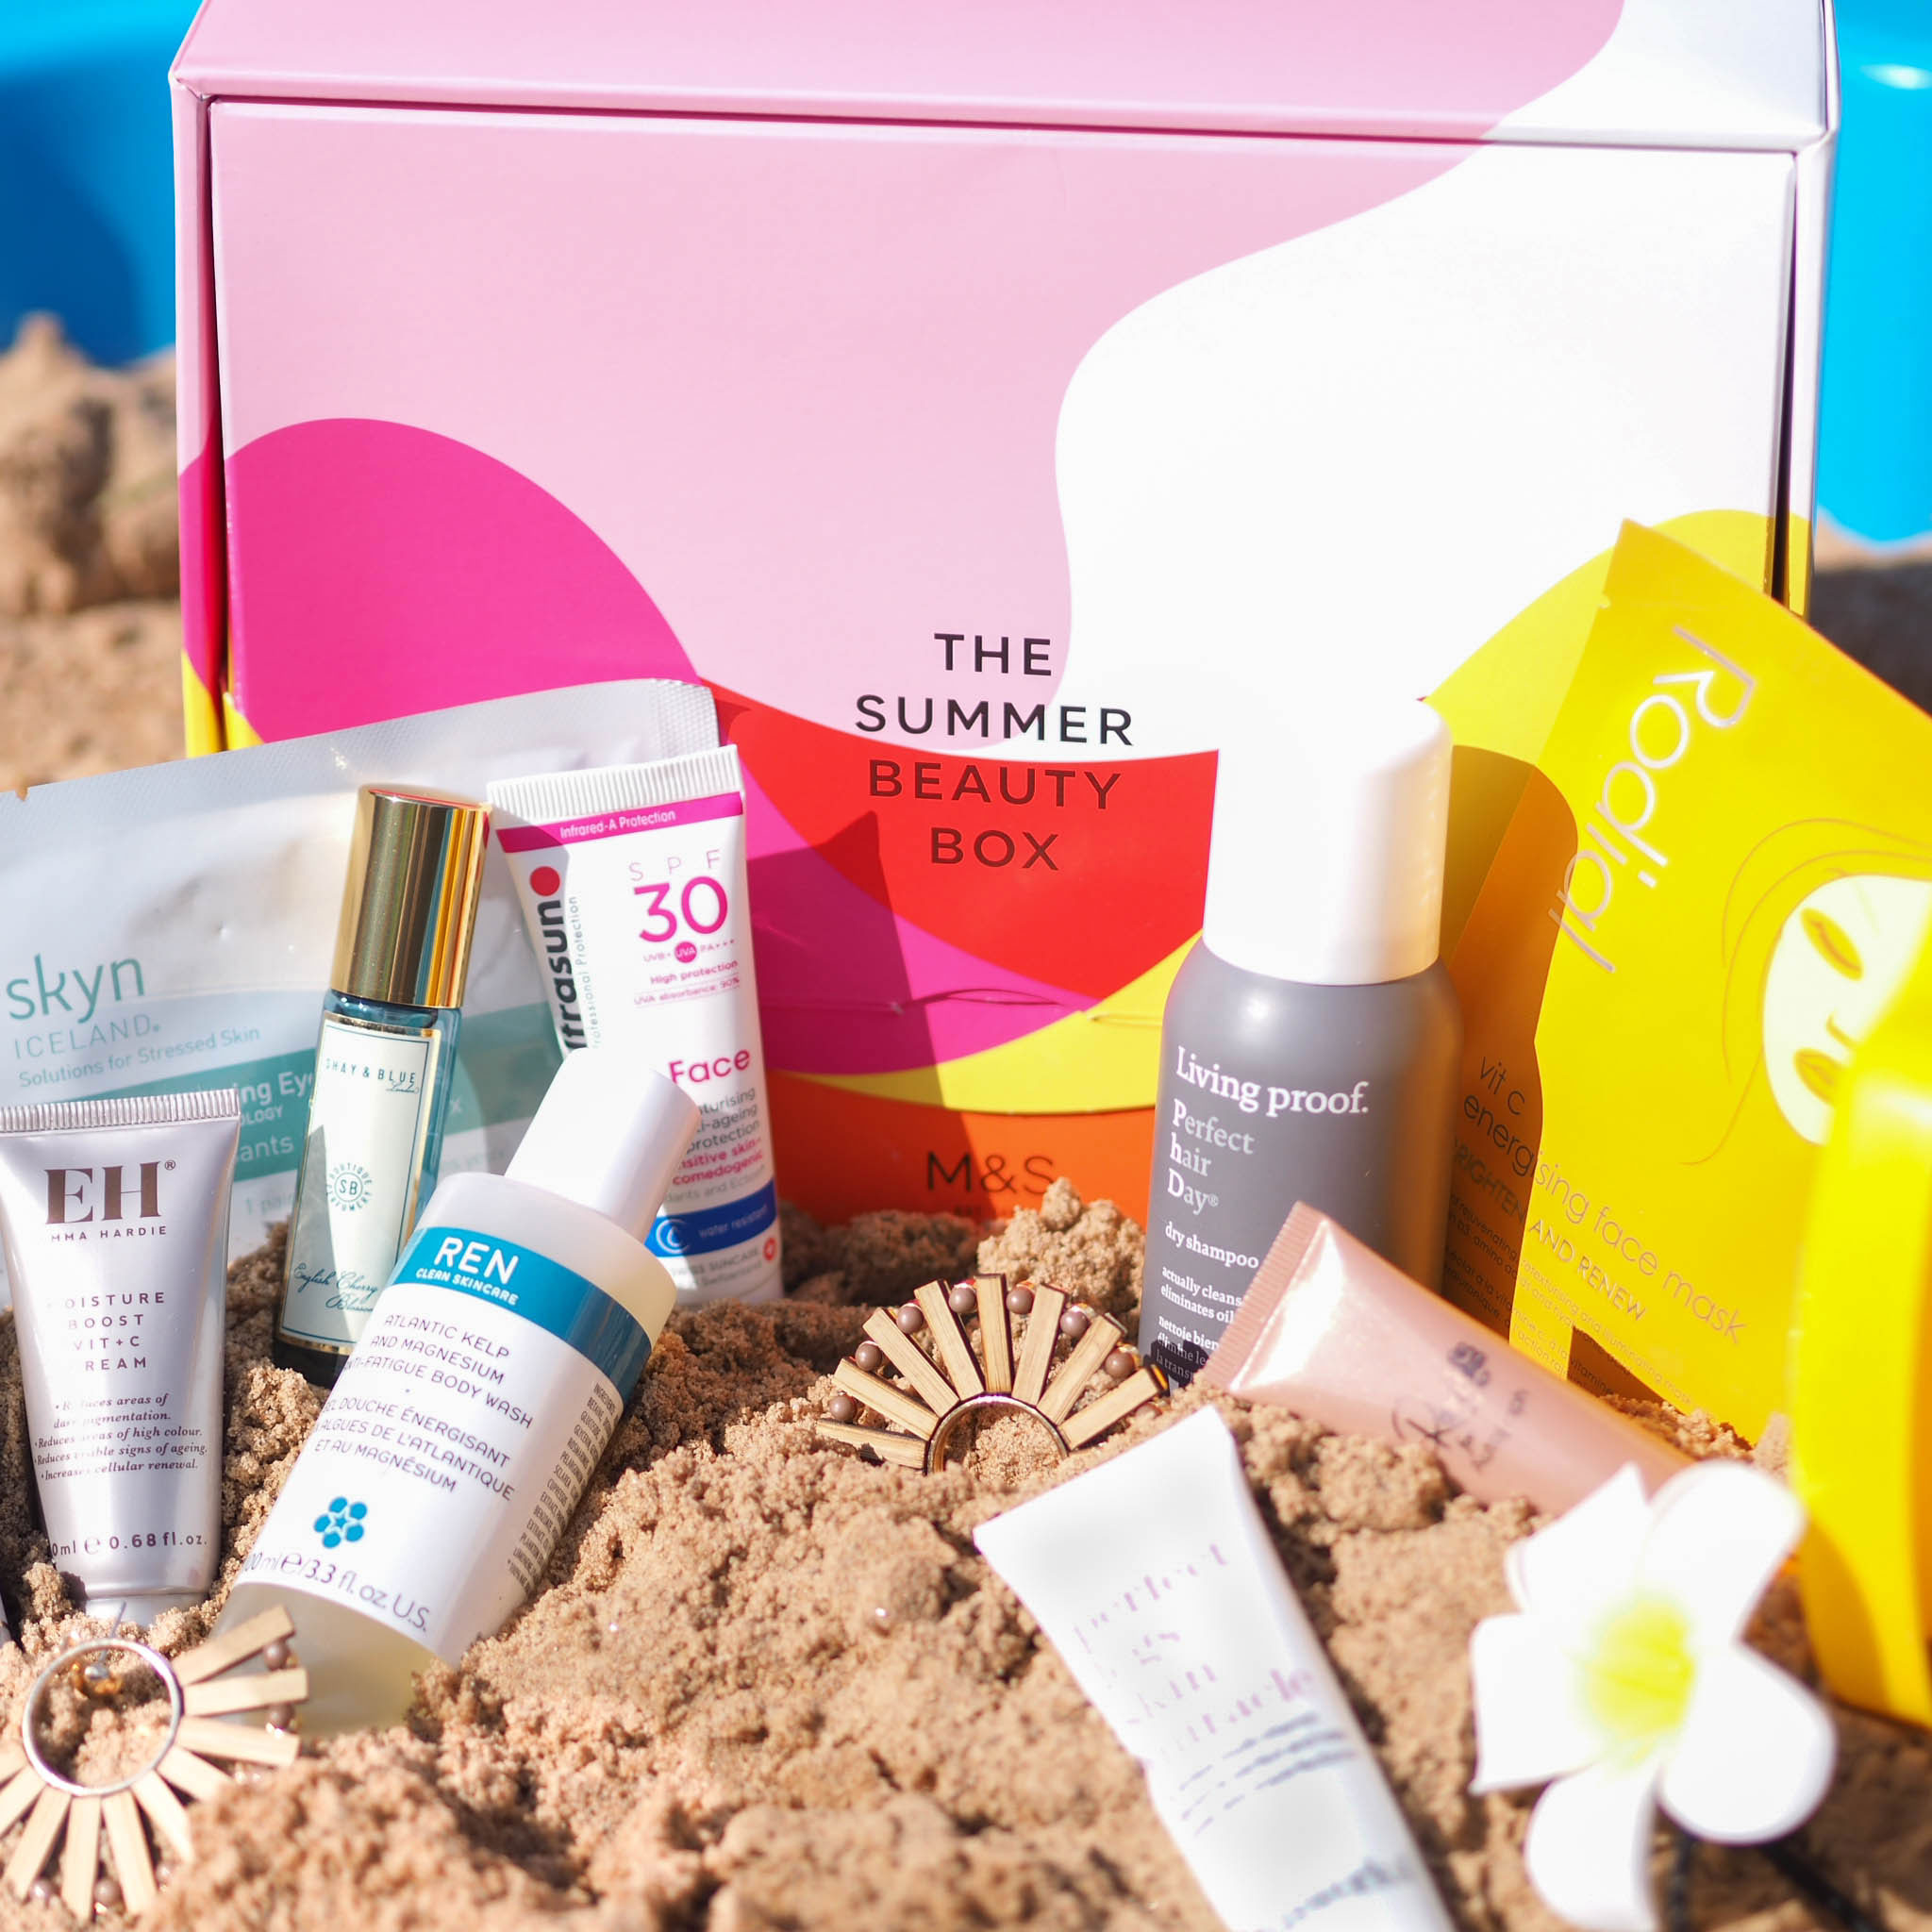 M&S Summer Beauty Box 2019